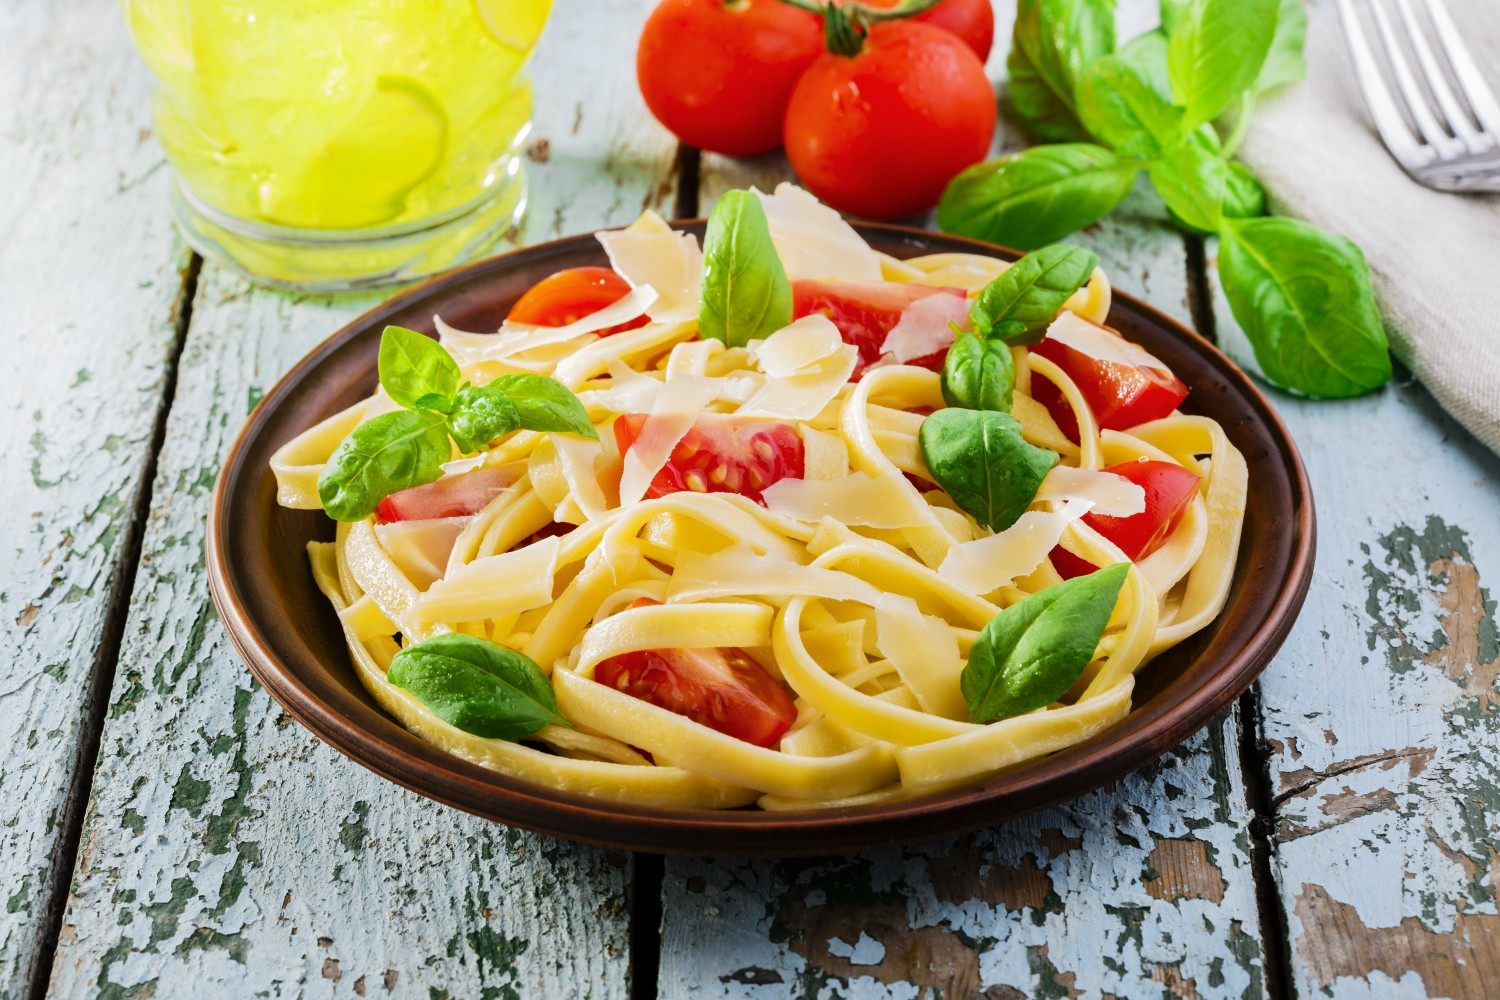 Image for Fettuccine with Creamy Tomato Sauce